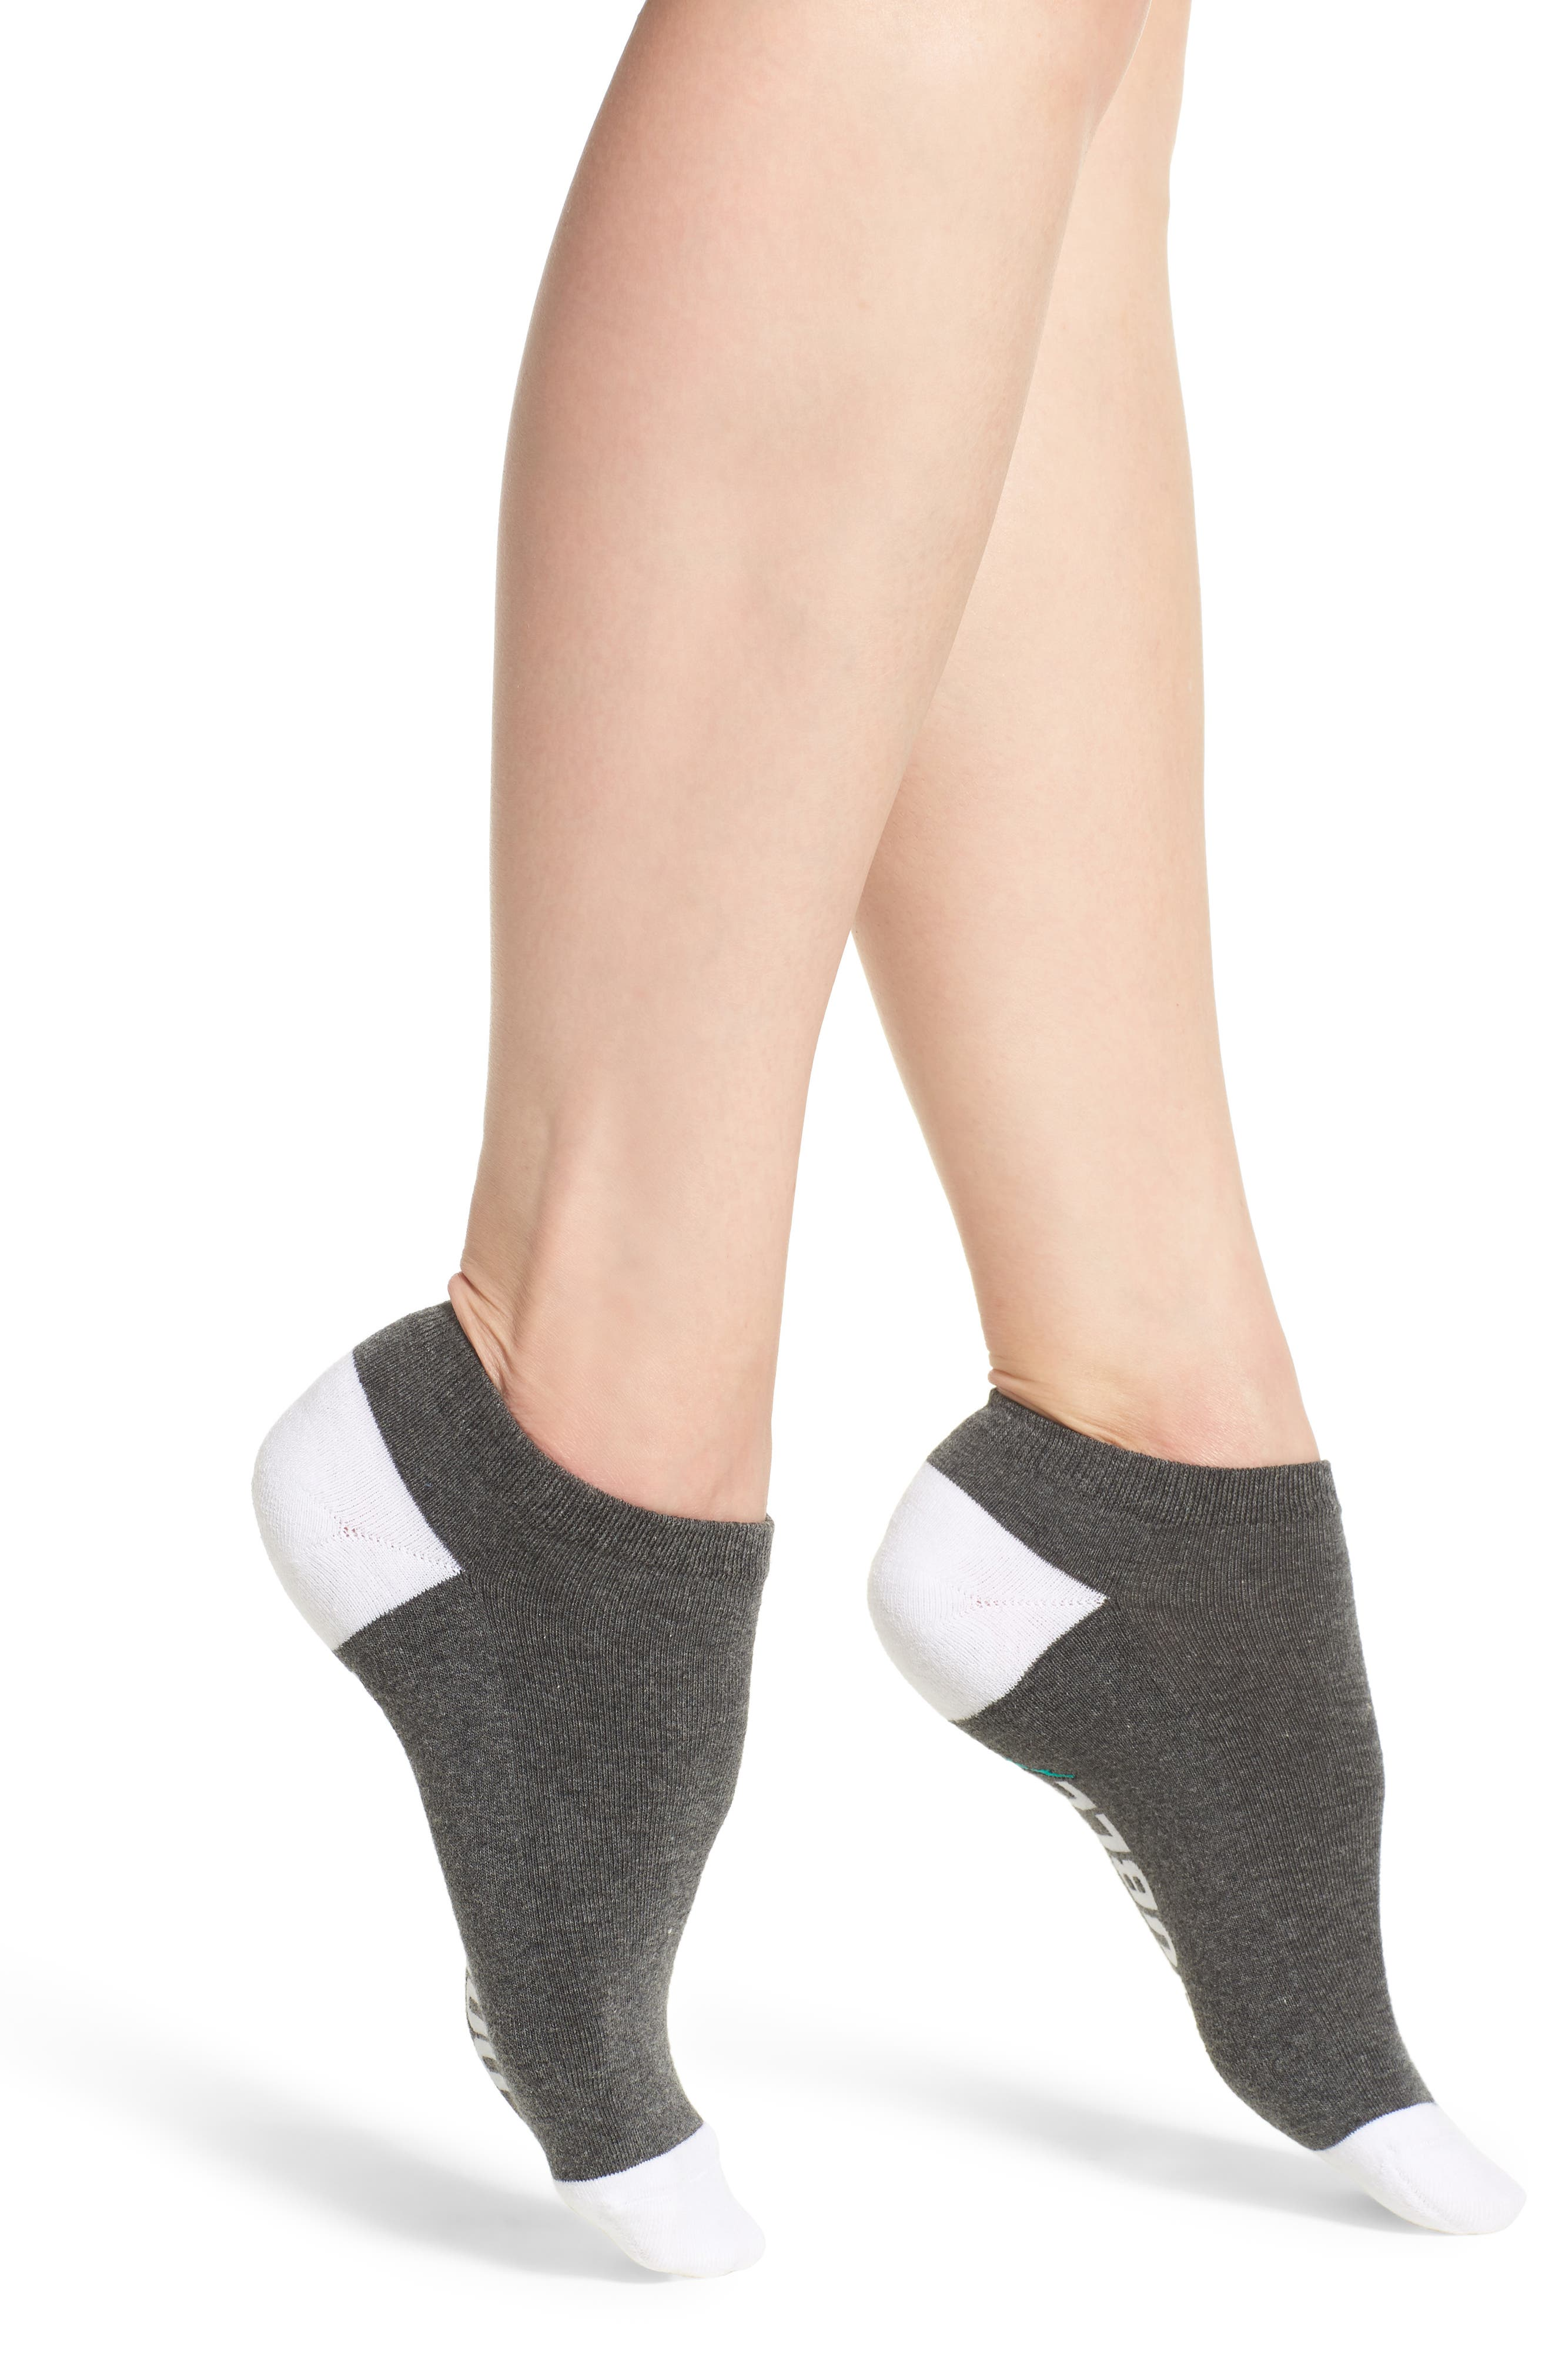 Lookin' For Trouble Low-Cut Socks,                             Main thumbnail 1, color,                             Charcoal Heather